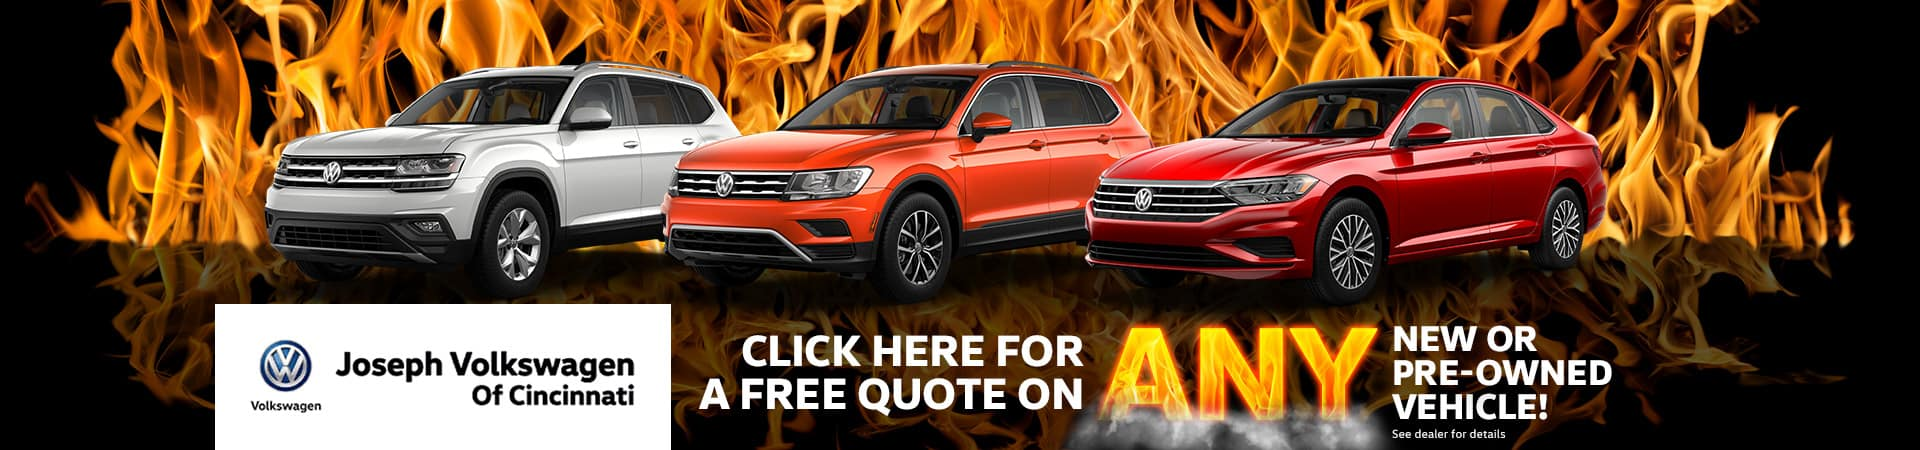 Free Quote On Any Vehicle | Cincinnati, OH